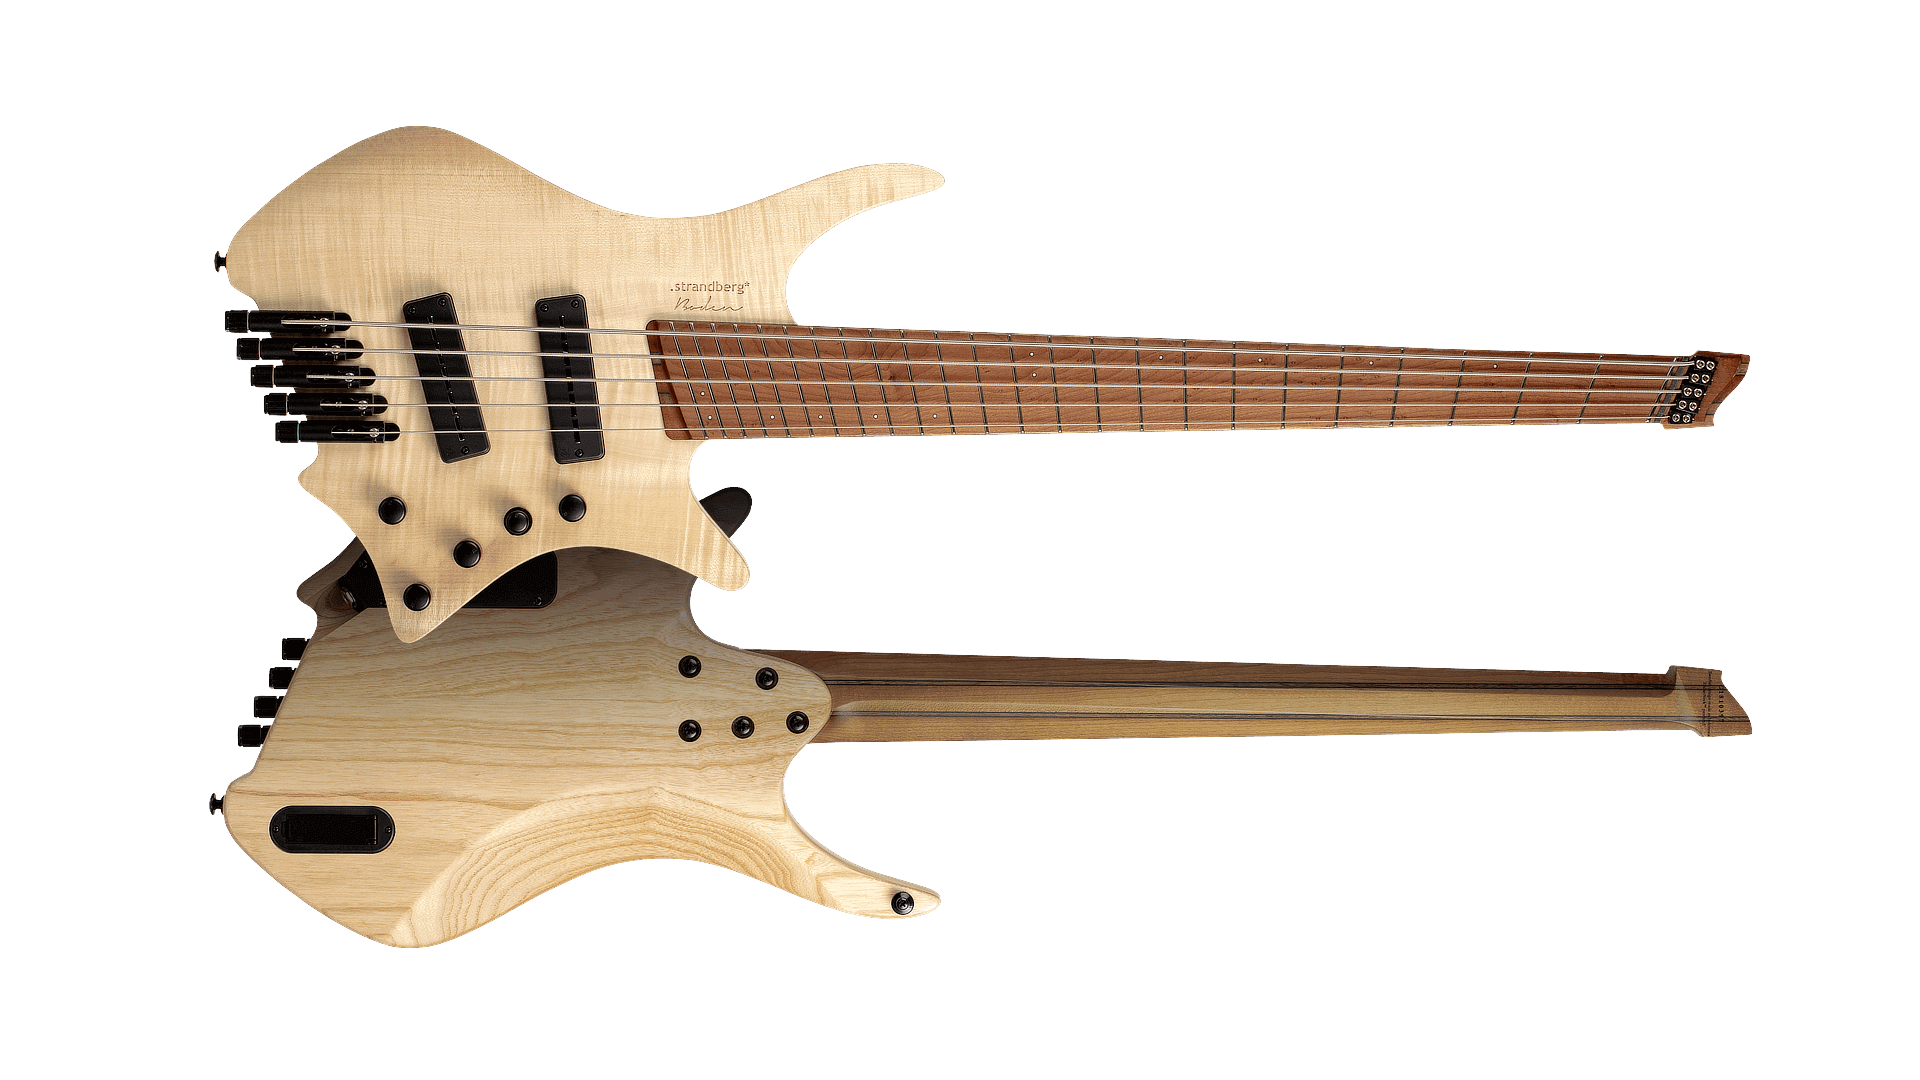 Headless boden BASS 4 string natural front & back view